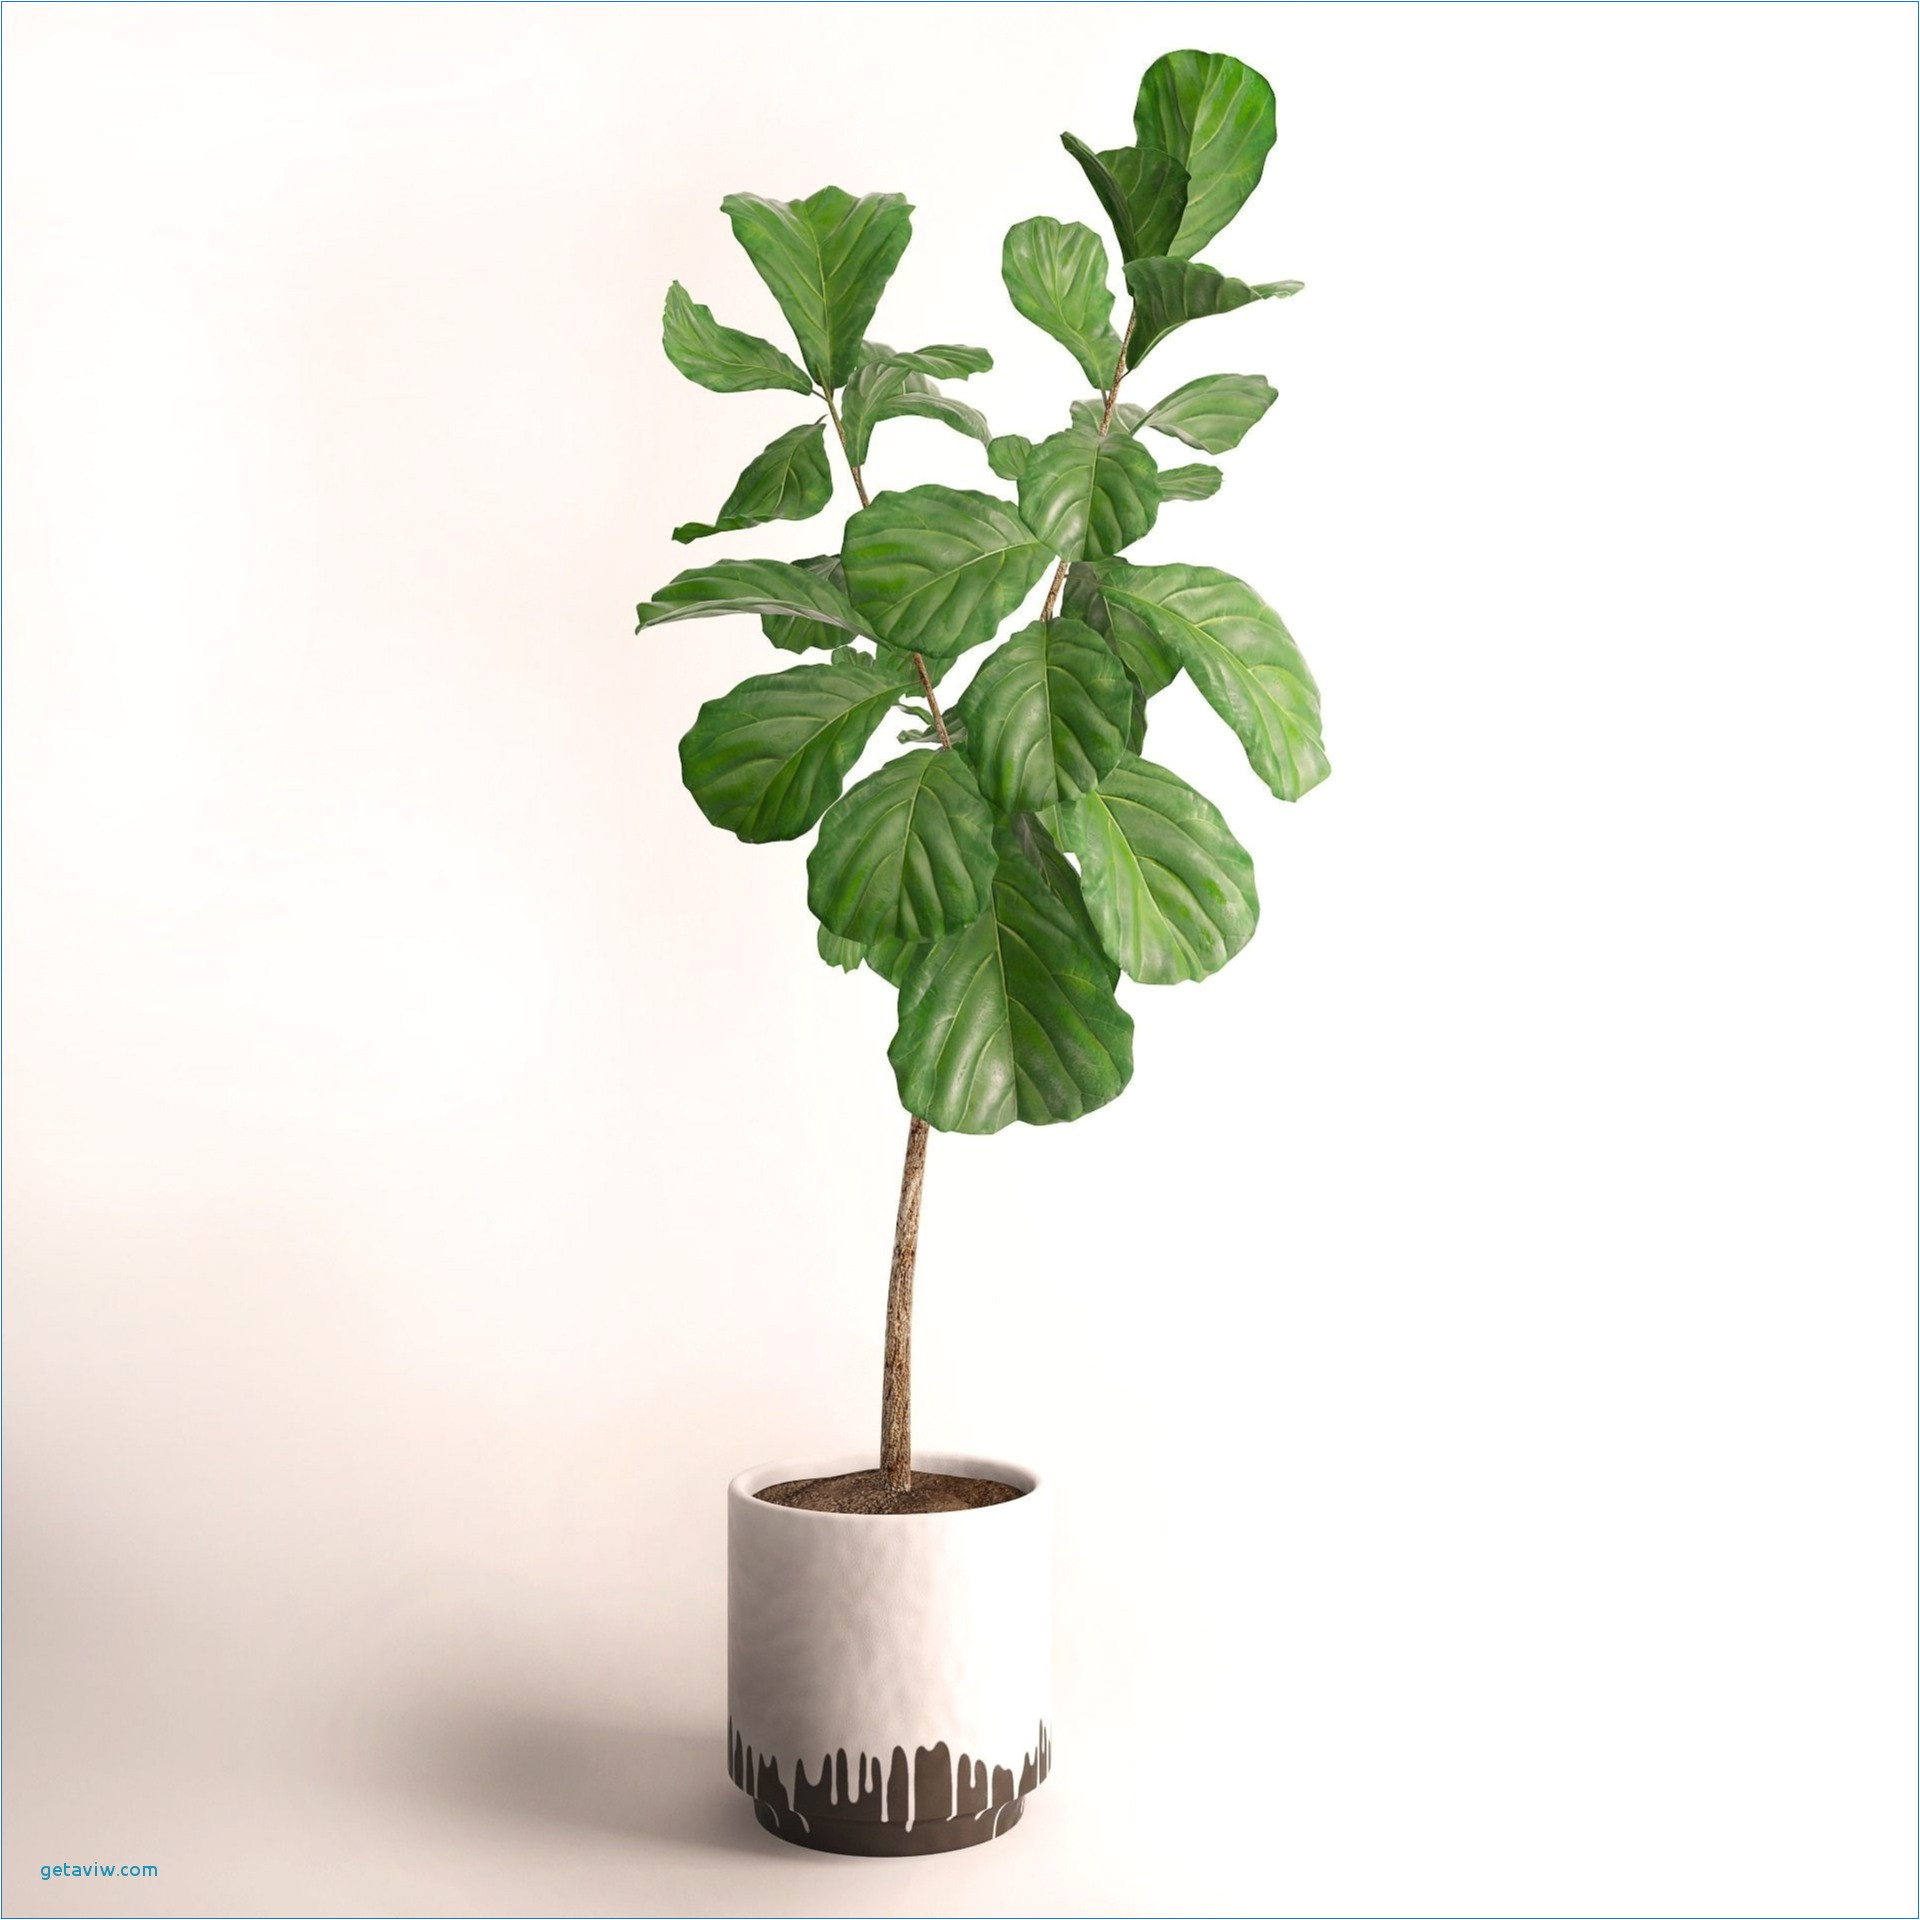 Ginseng Bonsai Pflege : ficus microcarpa ginseng how to take care adinaporter ~ Watch28wear.com Haus und Dekorationen